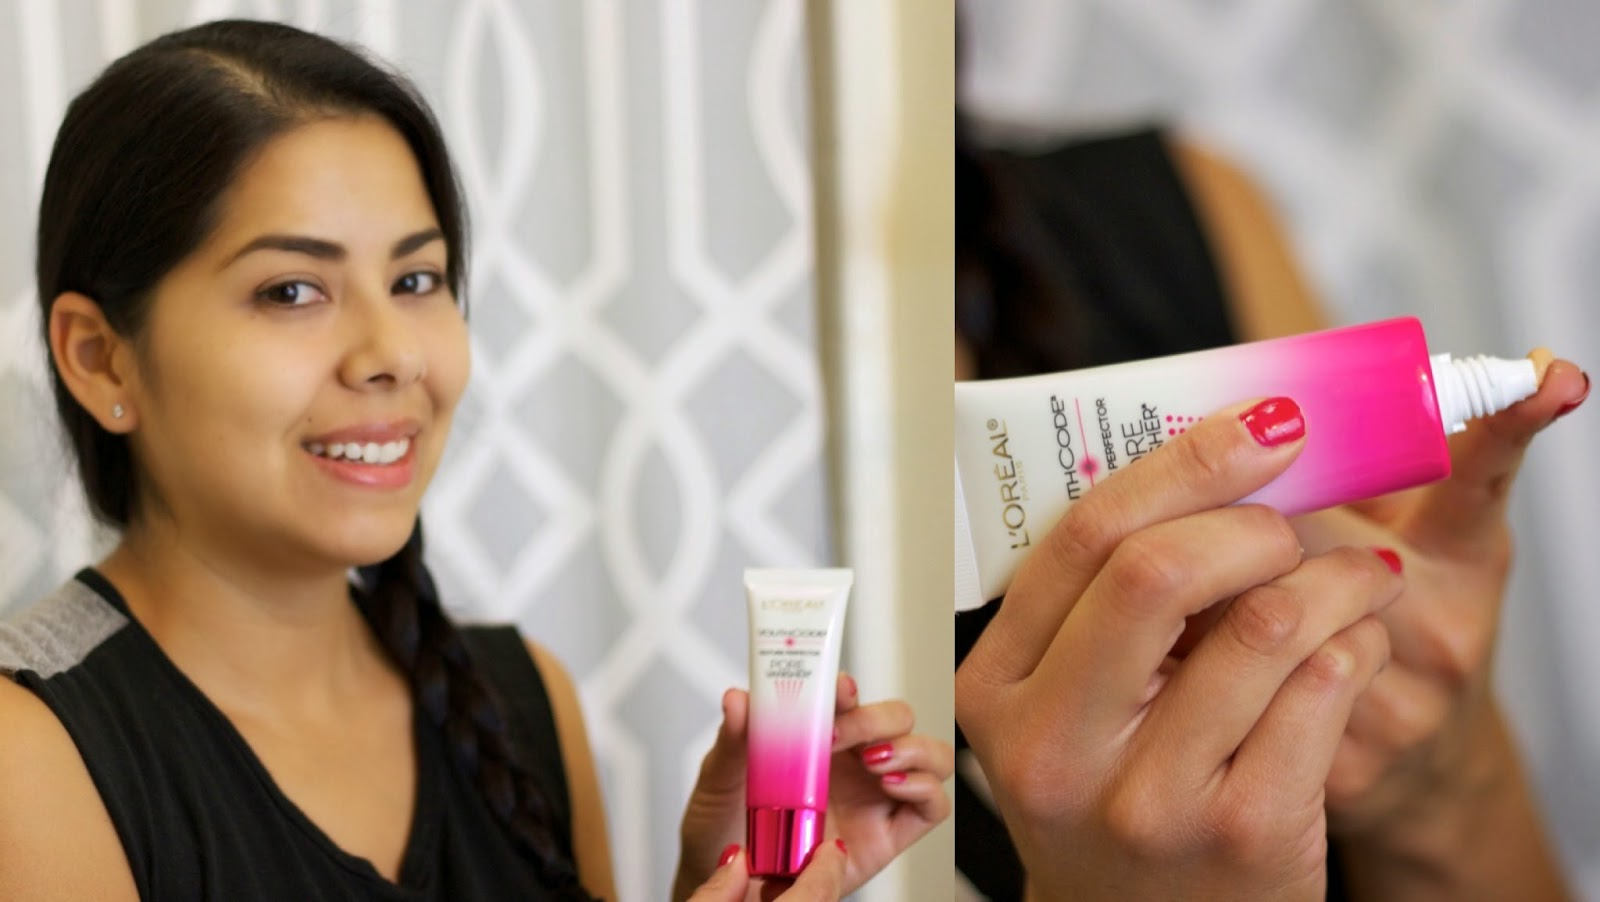 Beauty Product Review, moisturizer review 2014, loreal youth code, #porquetulovales, latina bloggers connect, Mexican blogger